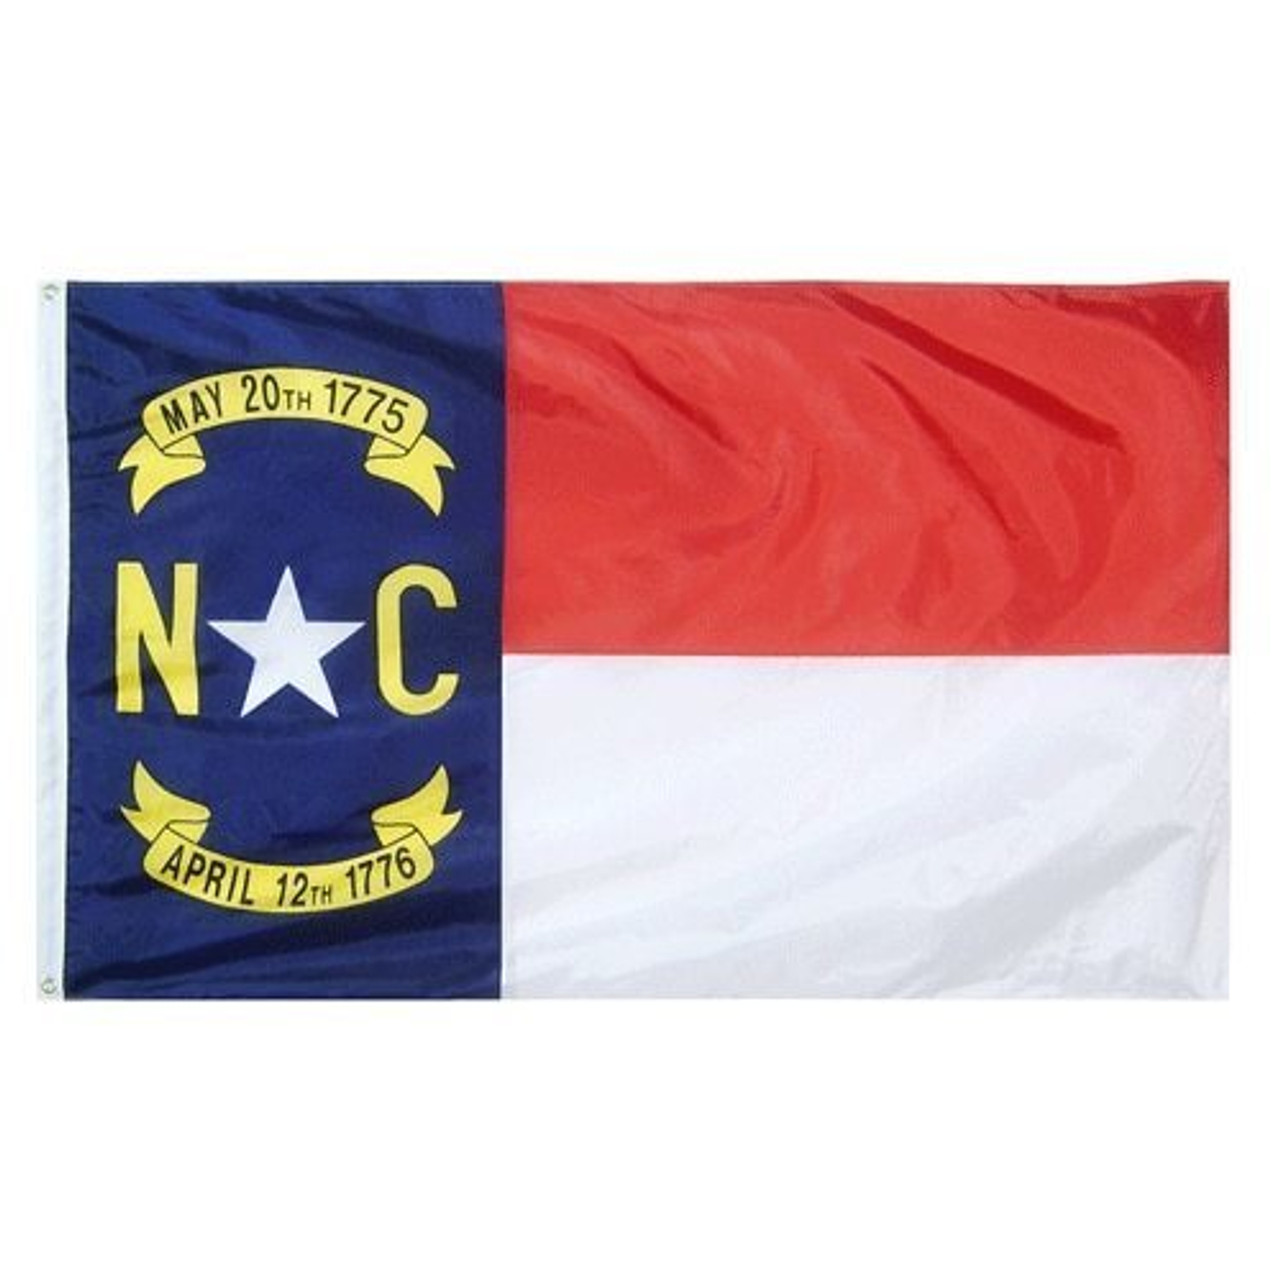 "The North Carolina flag is a rectangular flag with a white canvas header and brass grommets. The flag is split into three sections. The left side of the flag consists of a blue vertical rectangle with ""May 20th, 1775"" in a yellow banner on the top, the letters N and C in yellow with a white star in between them in the middle, and ""April 12th, 1776"" in a yellow banner on the bottom. This section takes up one third of the flag. The other two thirds of the flag are split in half horizontally. The top half is red, and the bottom half is white."